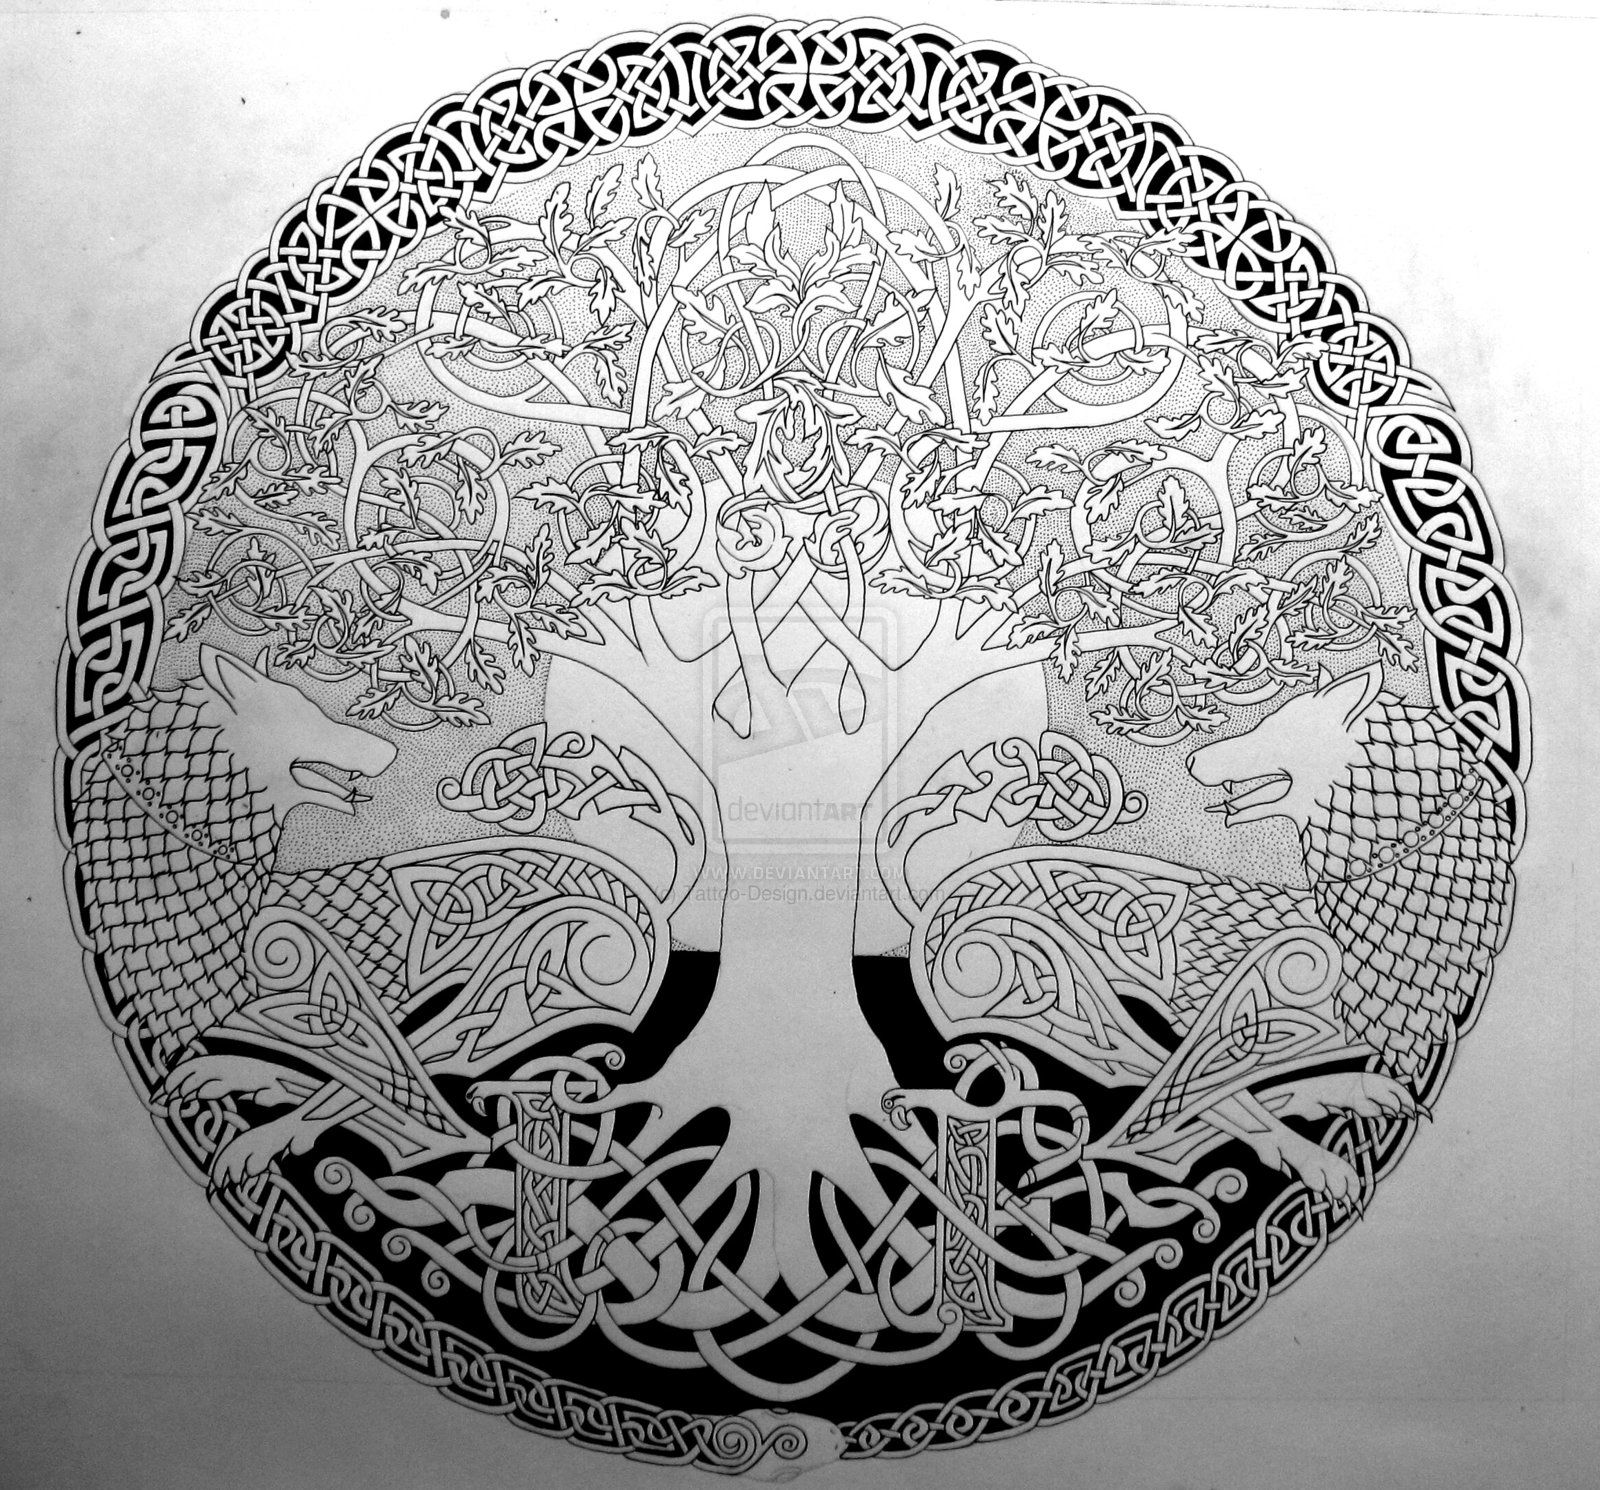 Two Wolves Sigil Outline By Tattoo Design On Deviantart Tree Of Life Tattoo Yggdrasil Tattoo Celtic Tree